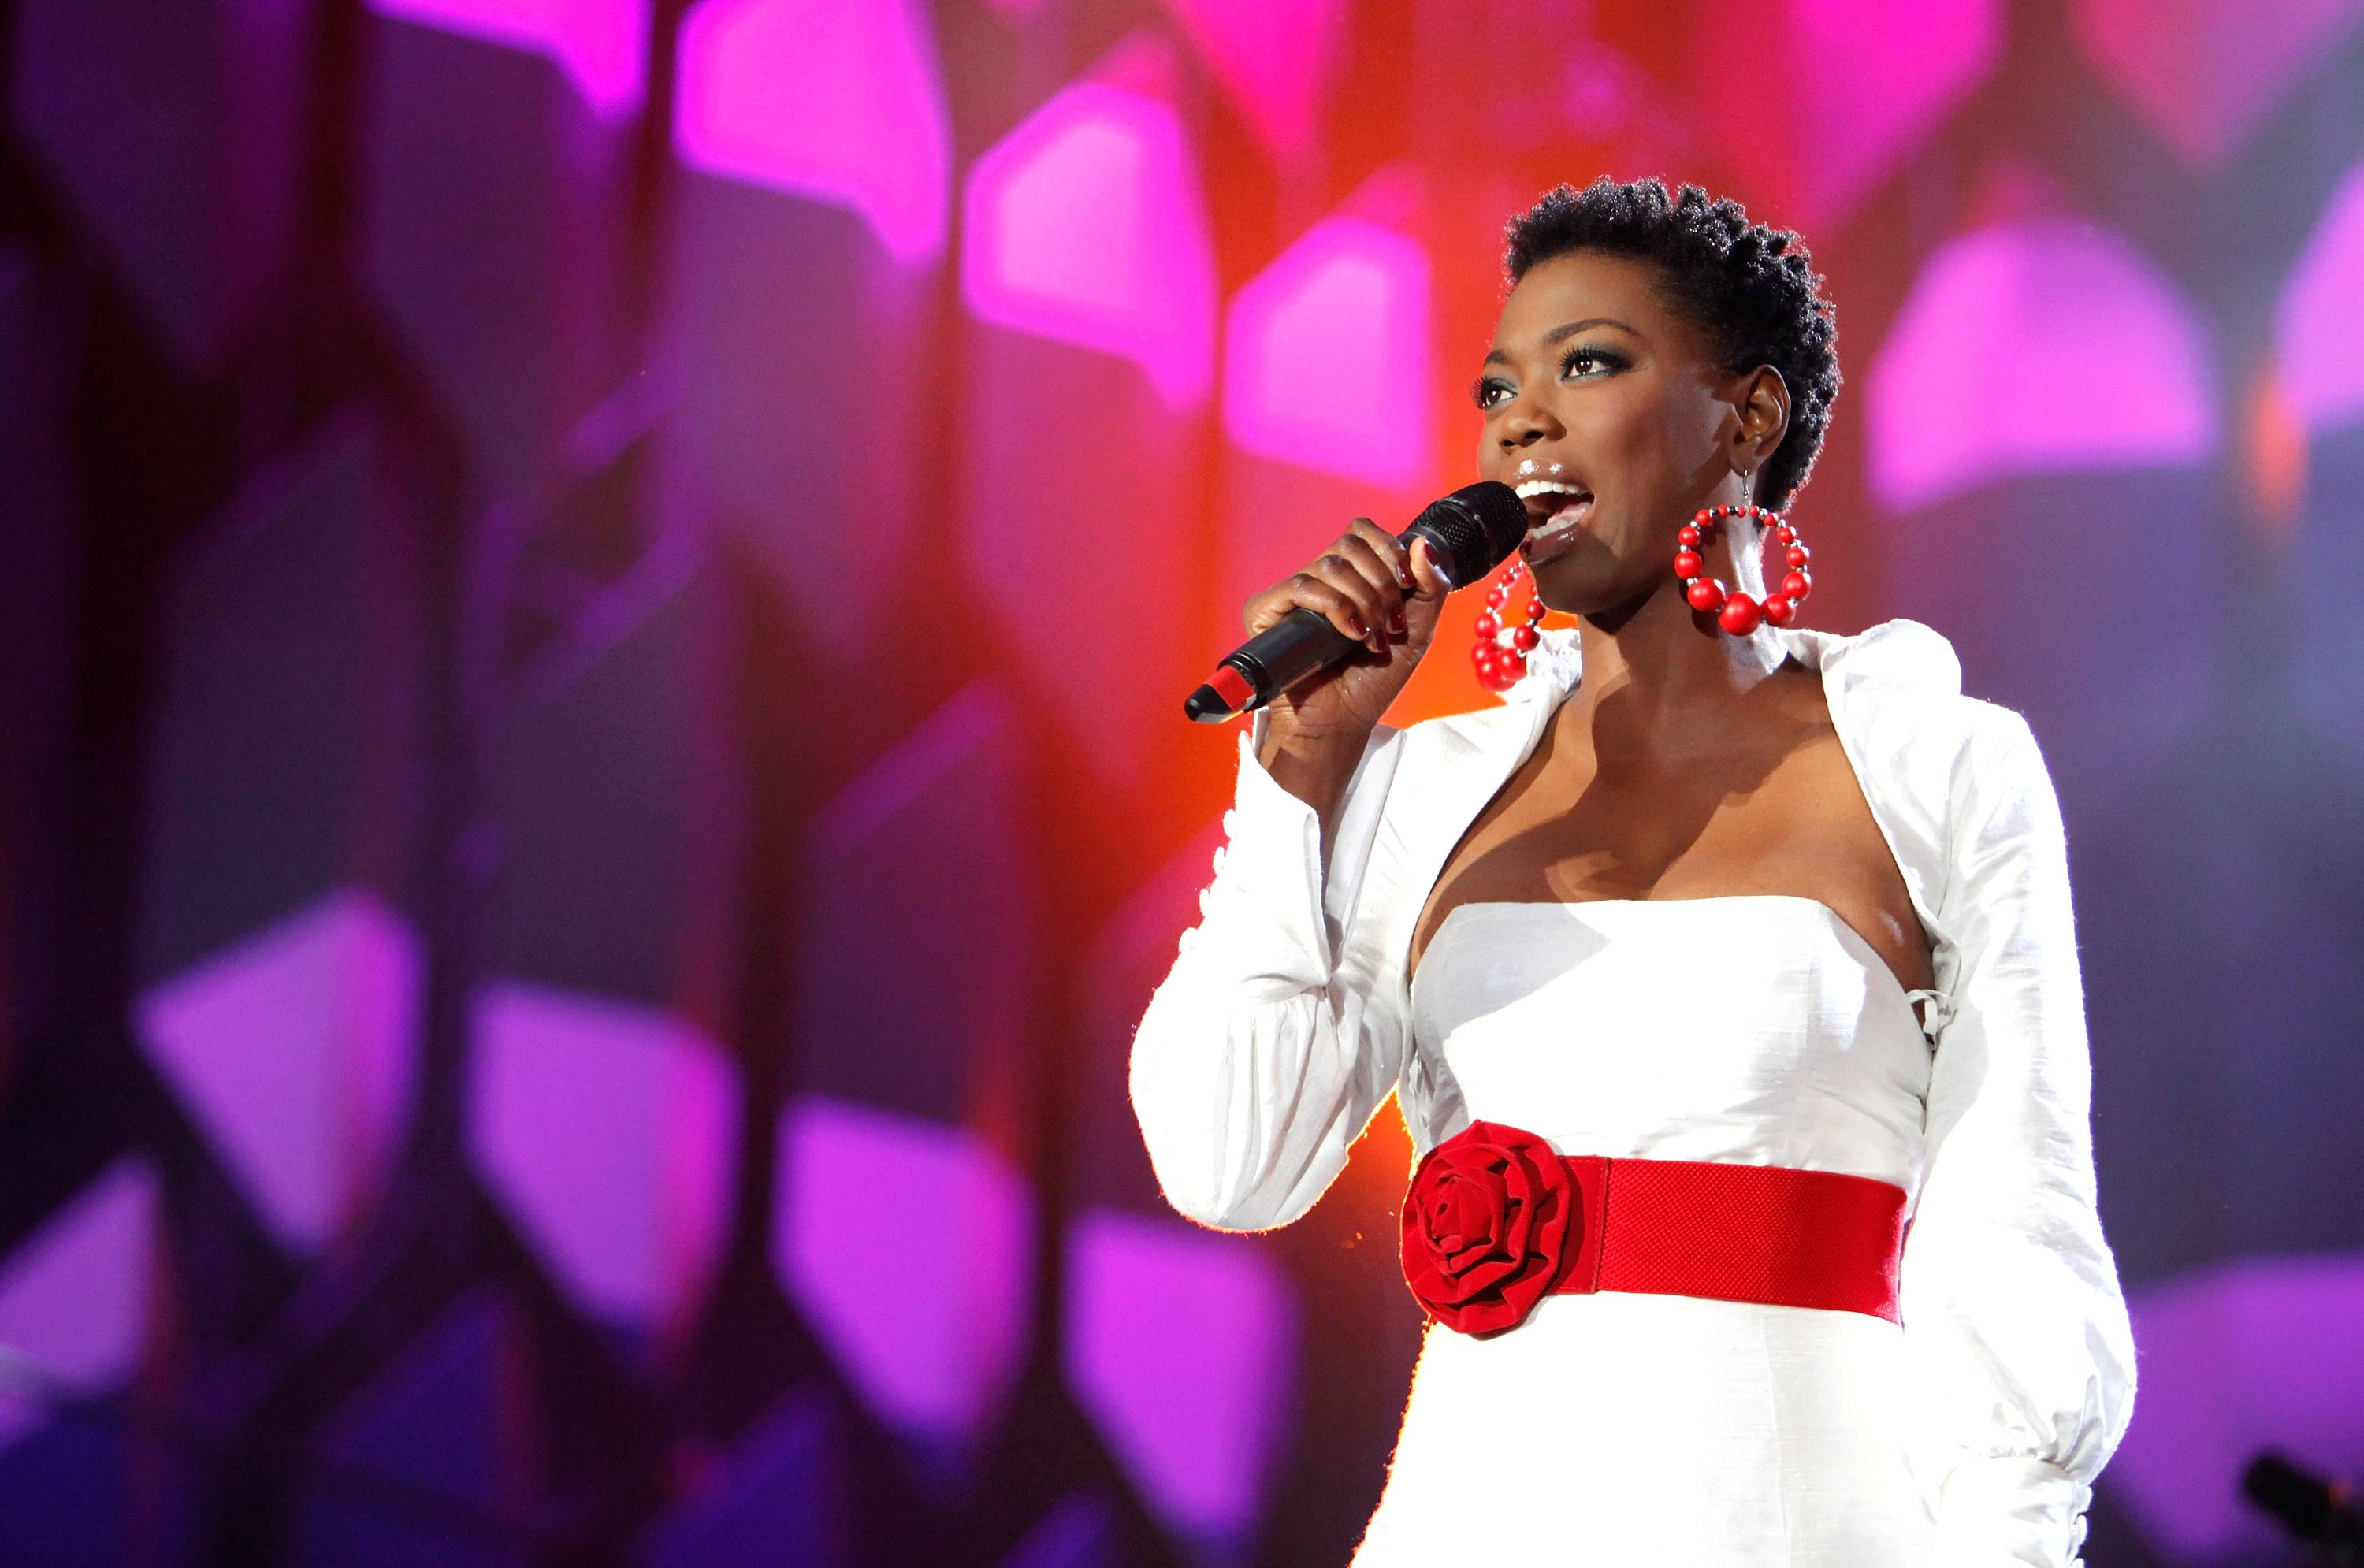 """Lira - Born in the midst of apartheid, platinum-selling vocalist Lira has a lot to sing about. Since being discovered in 2000, she has won several awards at the South African Music Awards, earned platinum certifications for two albums and snagged the top spot on the video sales chart with her concert DVD Live In Concert: A Celebration. ?Music changed my world forever. It was the companion and silent warrior that spoke for us when we were not able to,"""" Lira said in her biography.  (Photo: Michelly Rall/Getty Images for Live Earth Events)"""